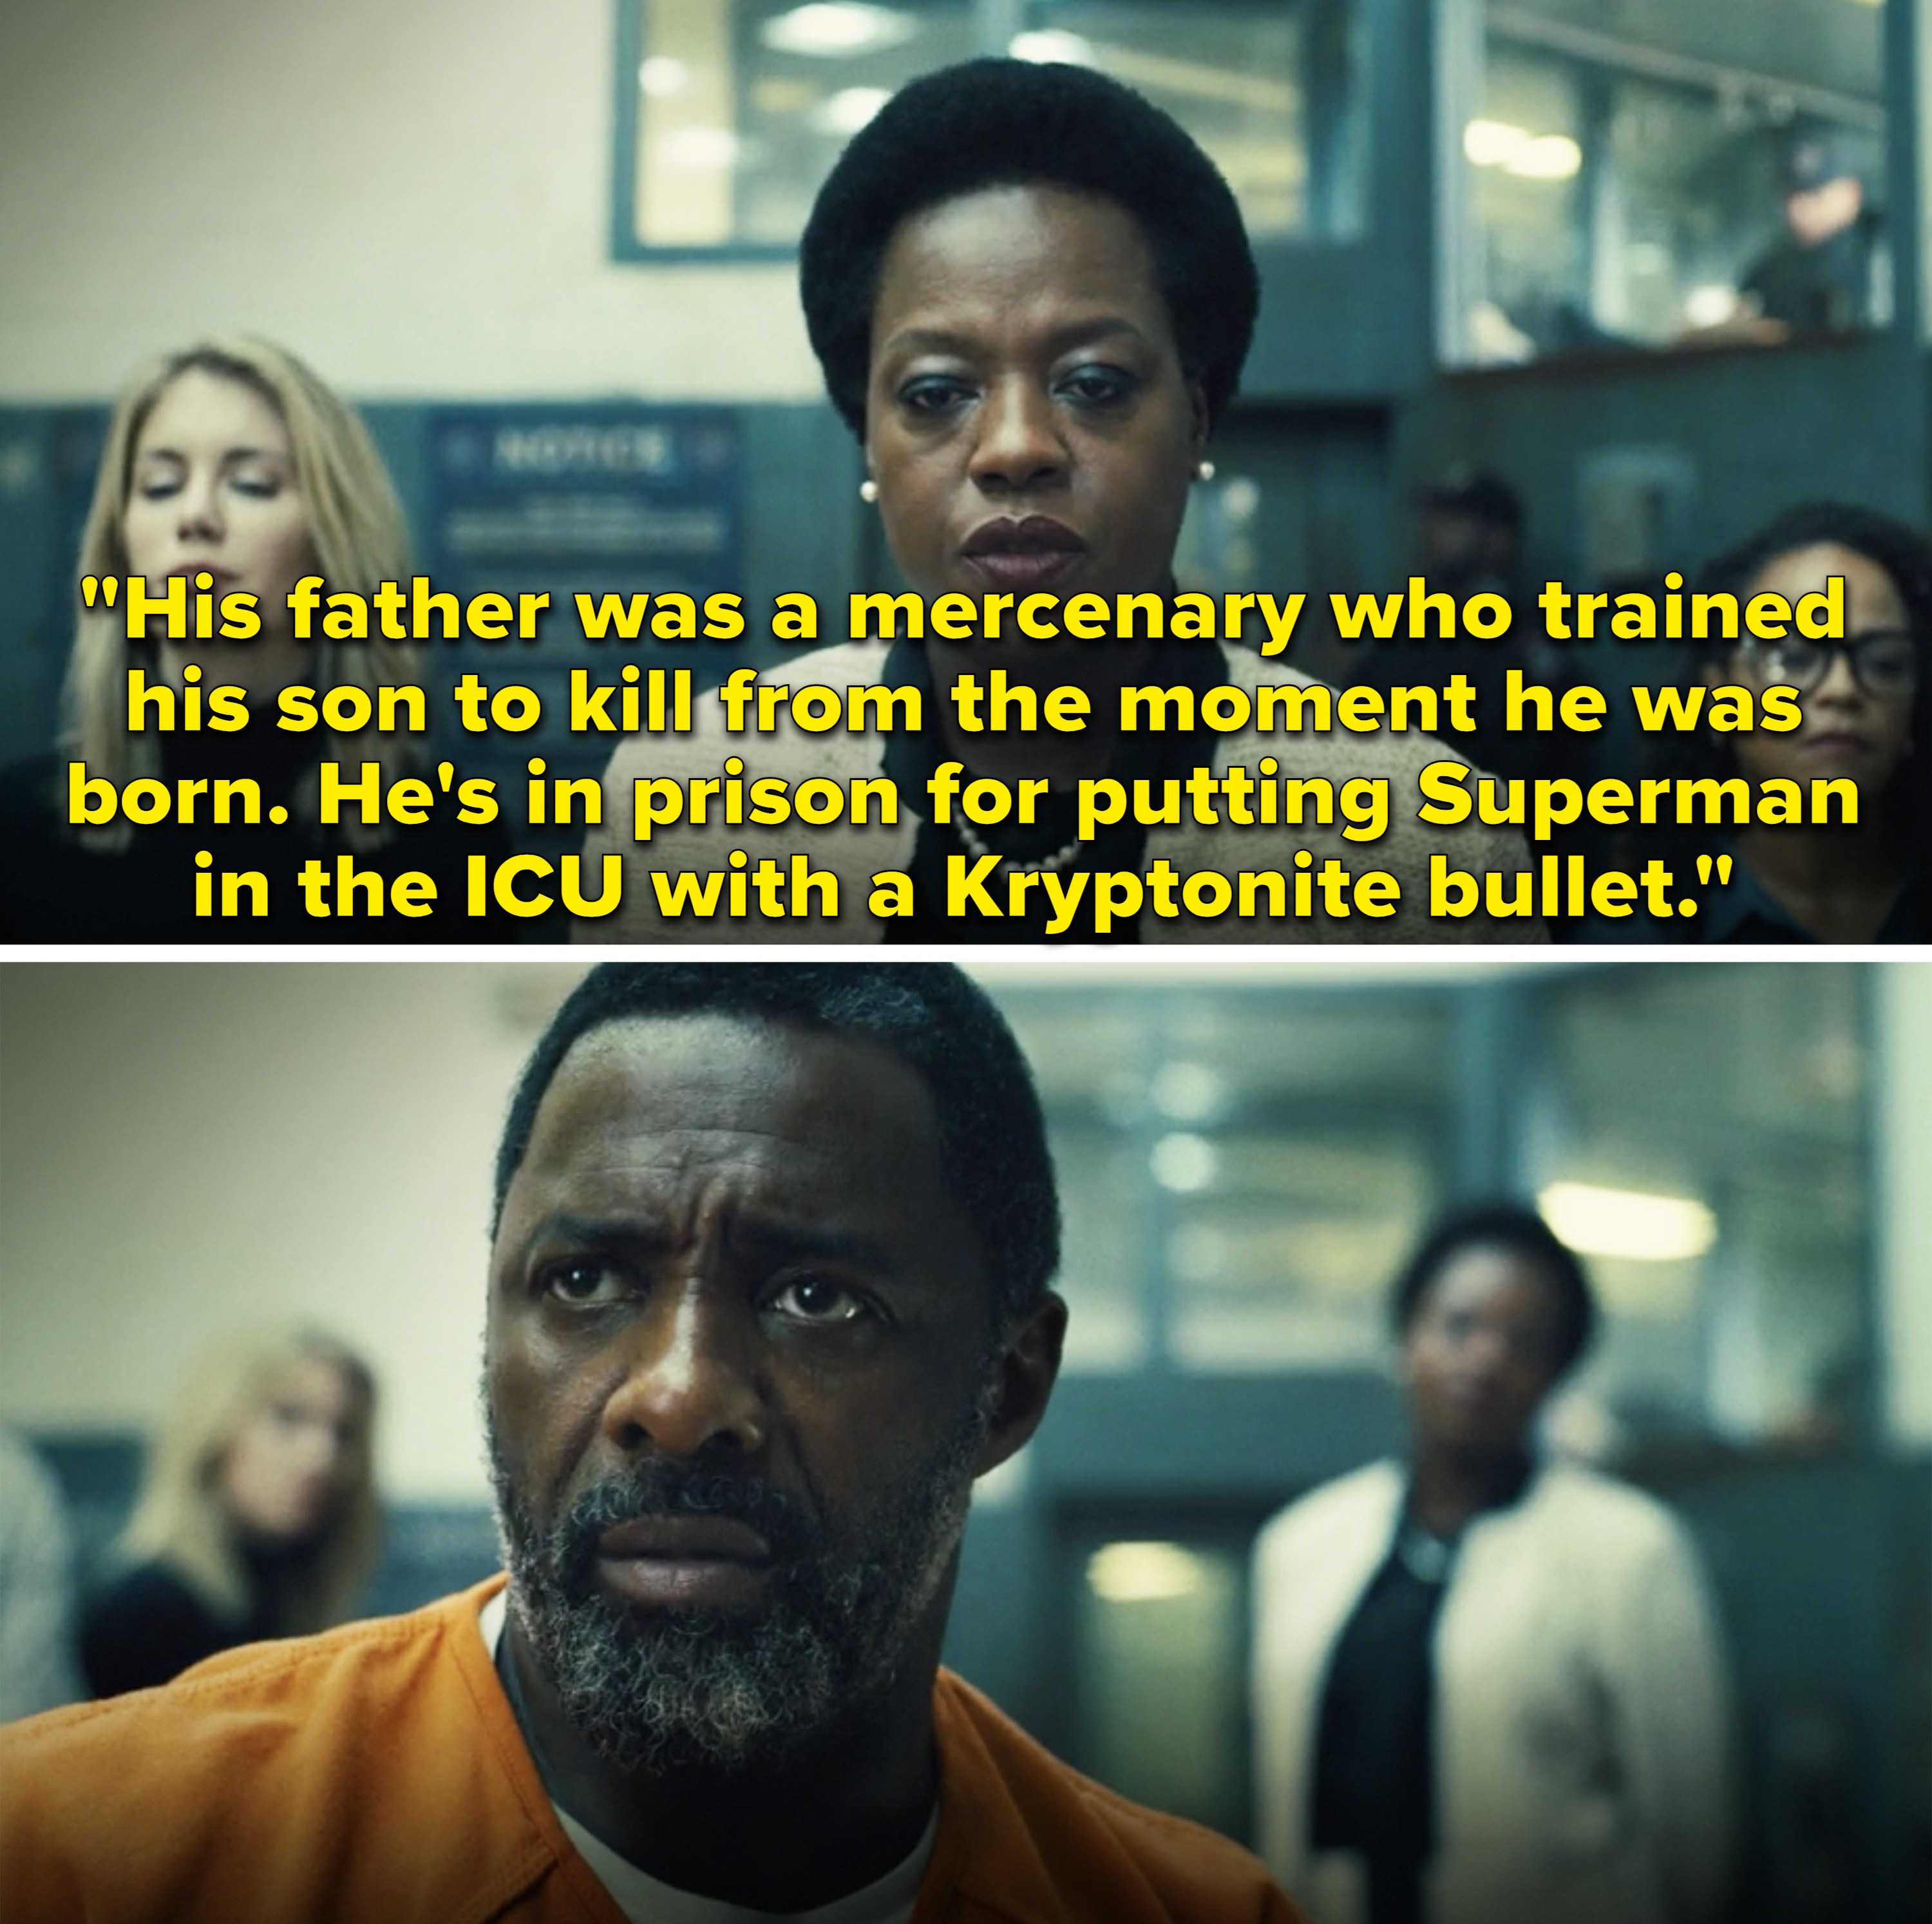 """Amanda saying,""""He's in prison for putting Superman in the ICU with a Kryptonite bullet"""""""